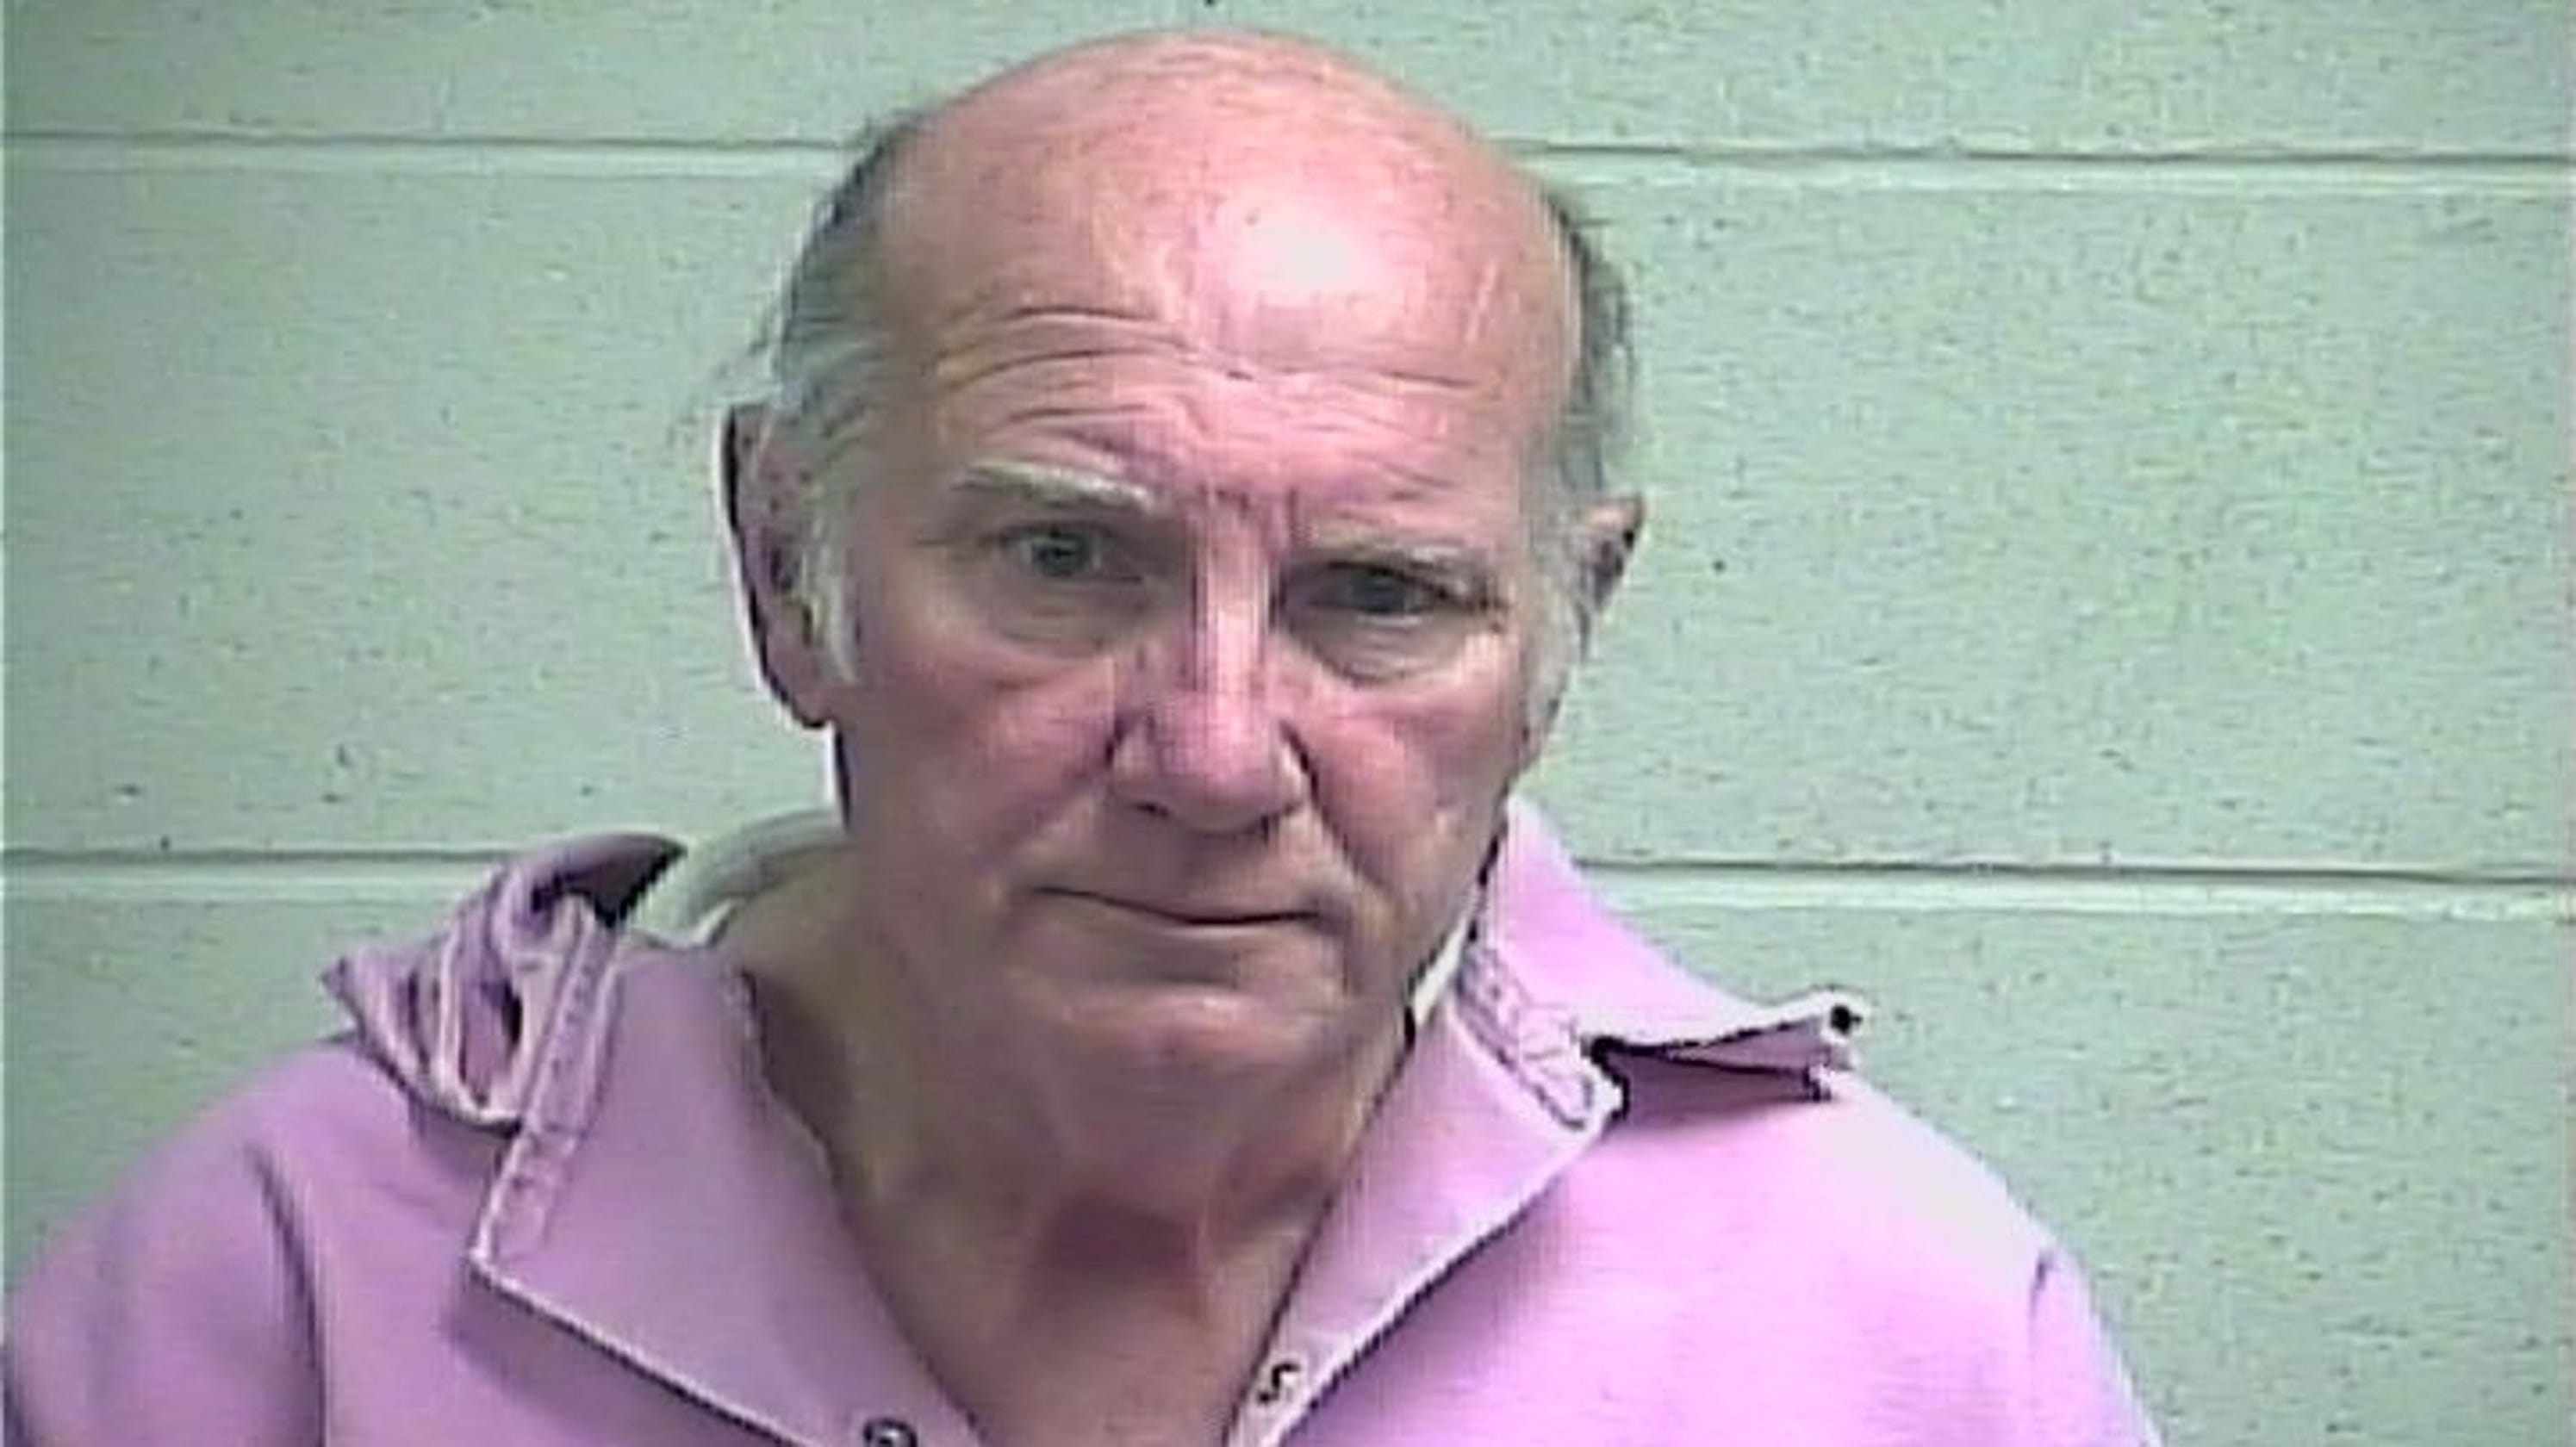 Elderly Mississippi man murders wife who had stroke, police say